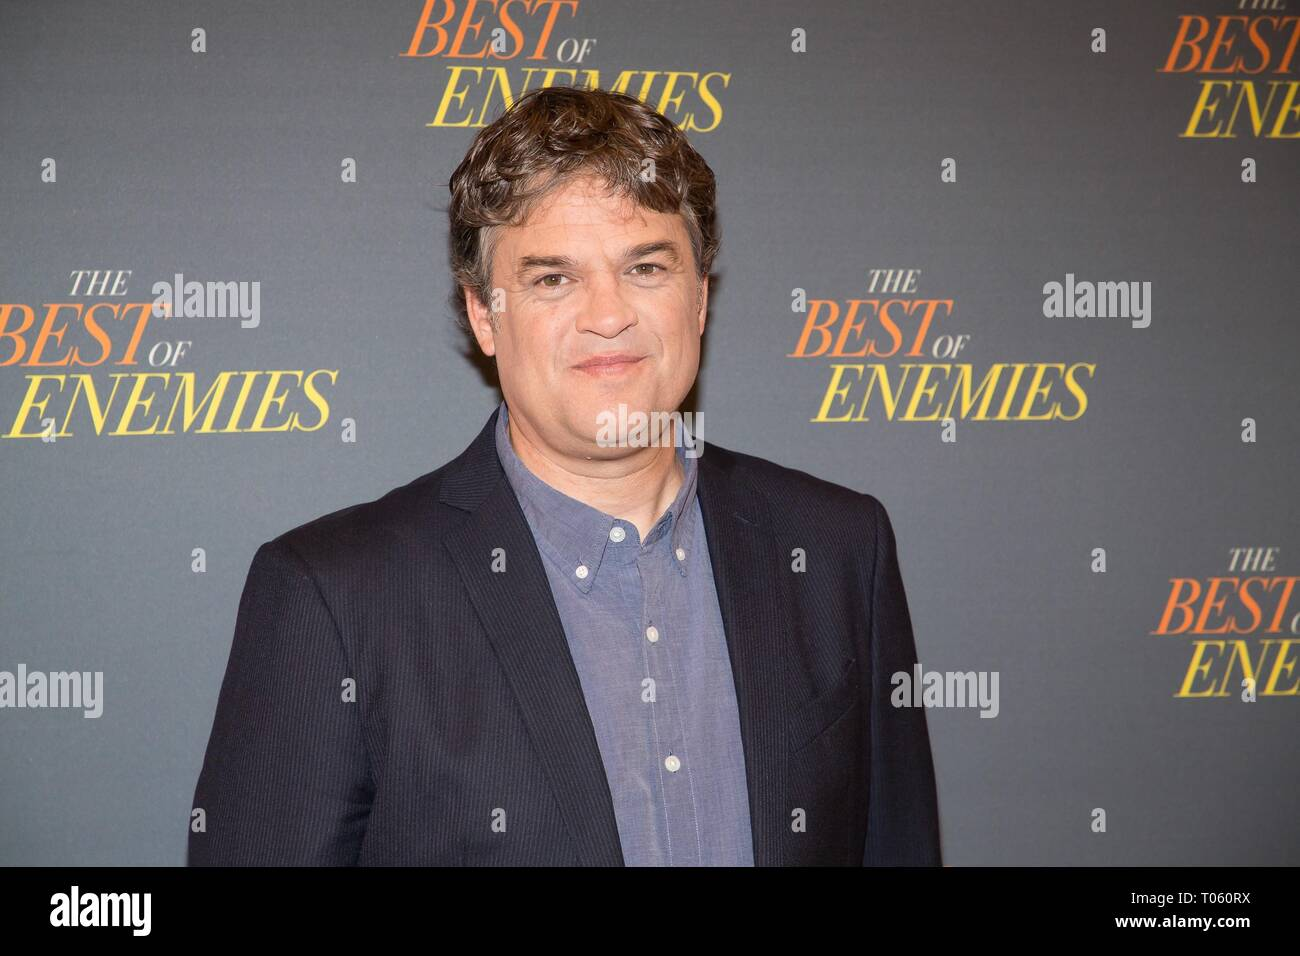 New York, USA. 17th Mar, 2019. Robin Bissell at arrivals for THE BEST OF ENEMIES Photo Call, The Whitby Hotel Theater, New York, NY March 17, 2019. Credit: Jason Smith/Everett Collection/Alamy Live News - Stock Image